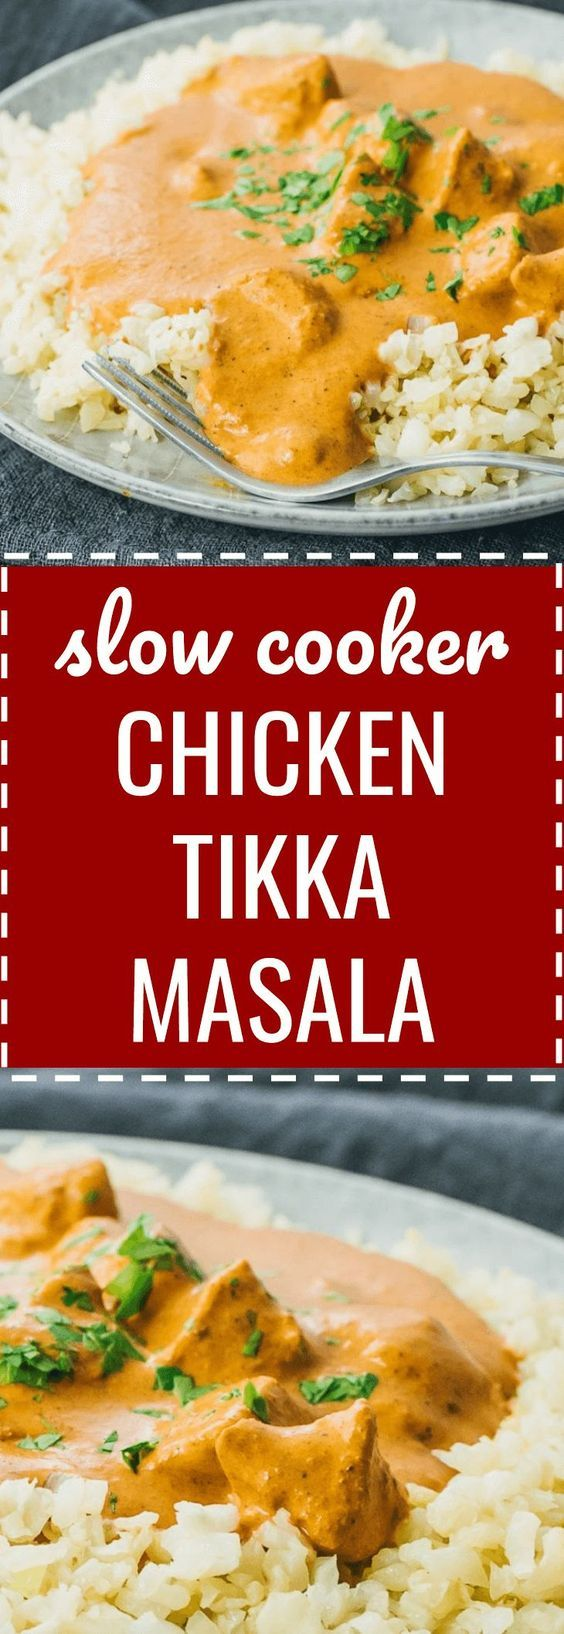 A homemade restaurant-quality version of chicken tikka masala using the slow cooker. crockpot / indian dishes / crock pot / families / weeknight dinners / comfort foods / rice / spices / curries / keto / low carb / diet / atkins / induction / meals / recipes / easy / dinner / lunch / foods / healthy / gluten free / paleo / meal planning / super bowl / clean eating / ideas / authentic / best / trader joes / sauce / light #indian #chicken #lowcarb via @savory_tooth